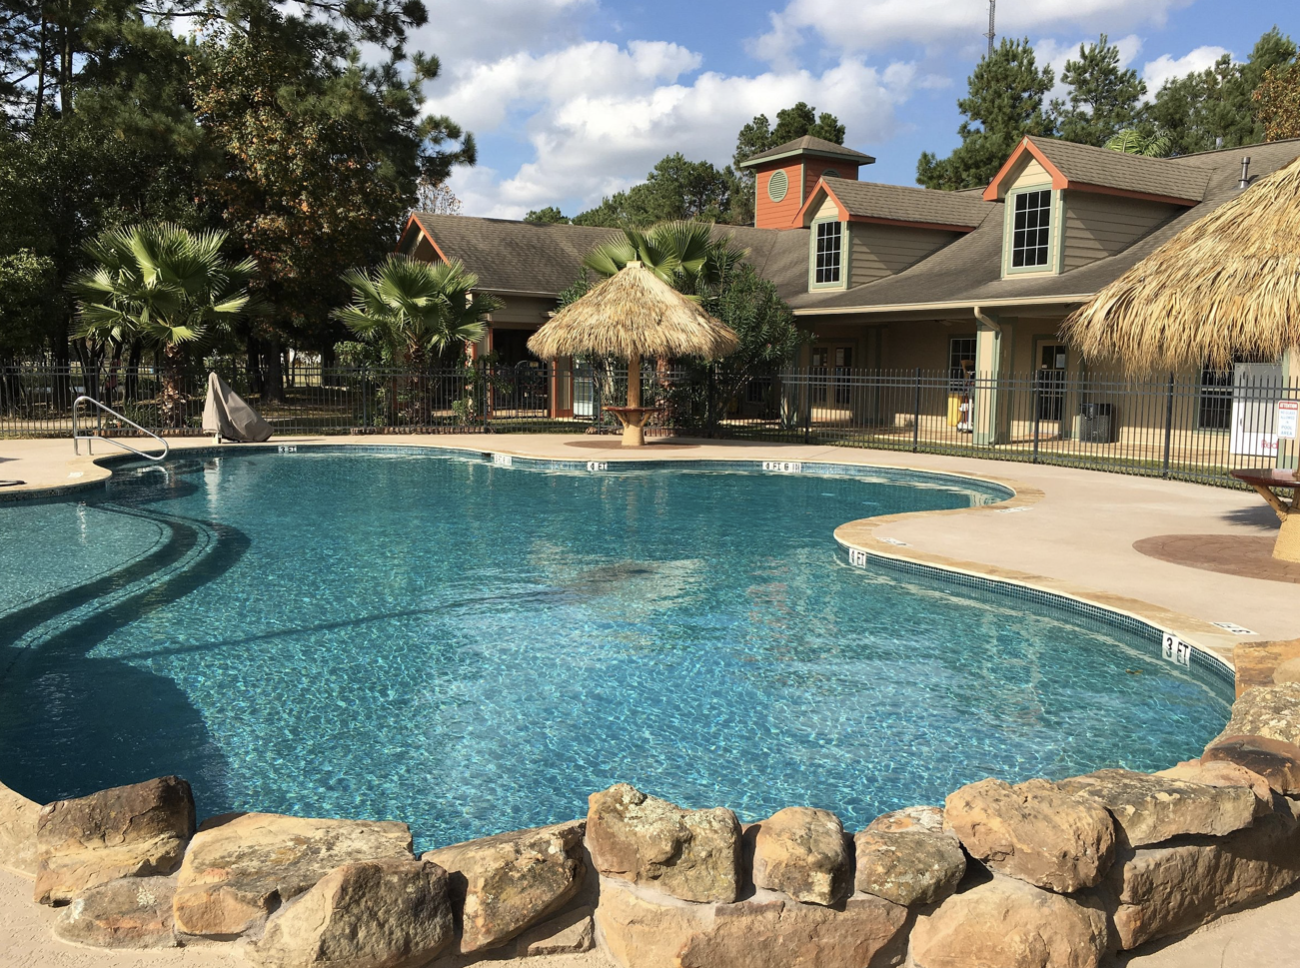 Pool area and cabana at Rayford Crossing